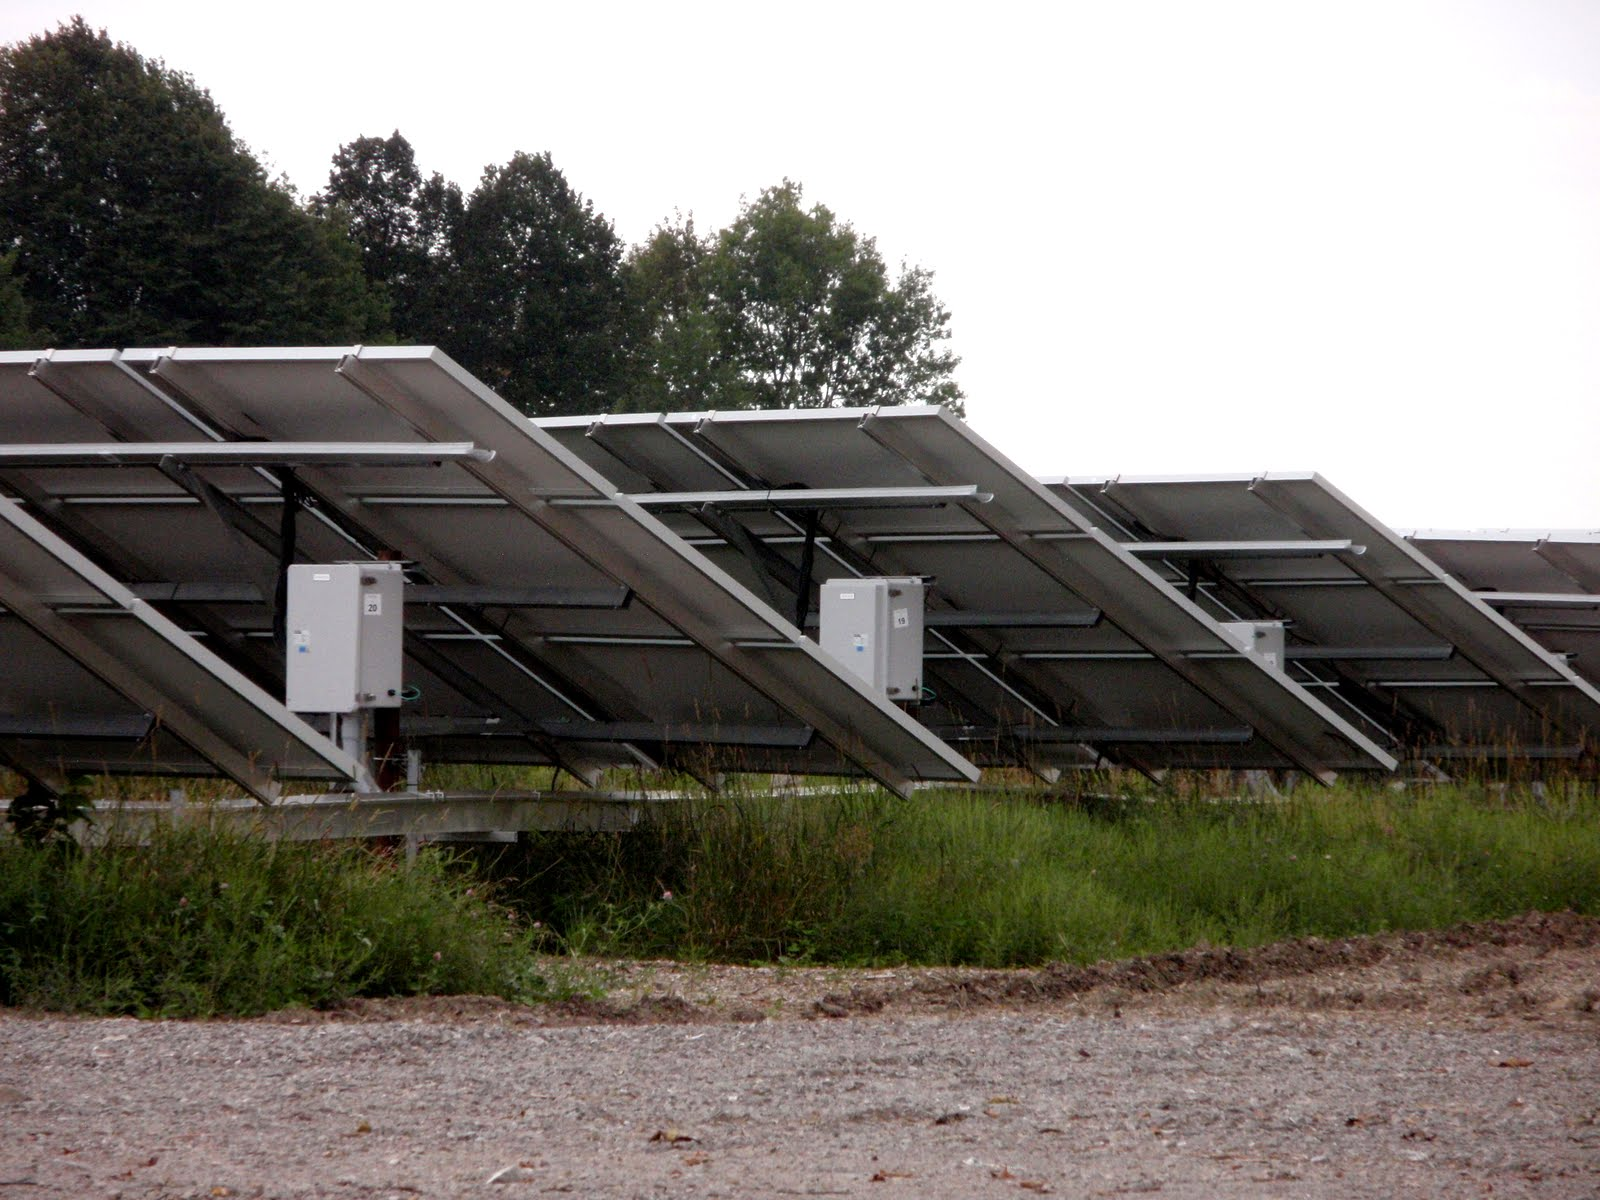 Ontario Government has very good incentives for solar power. You see lots of solar panels all over.